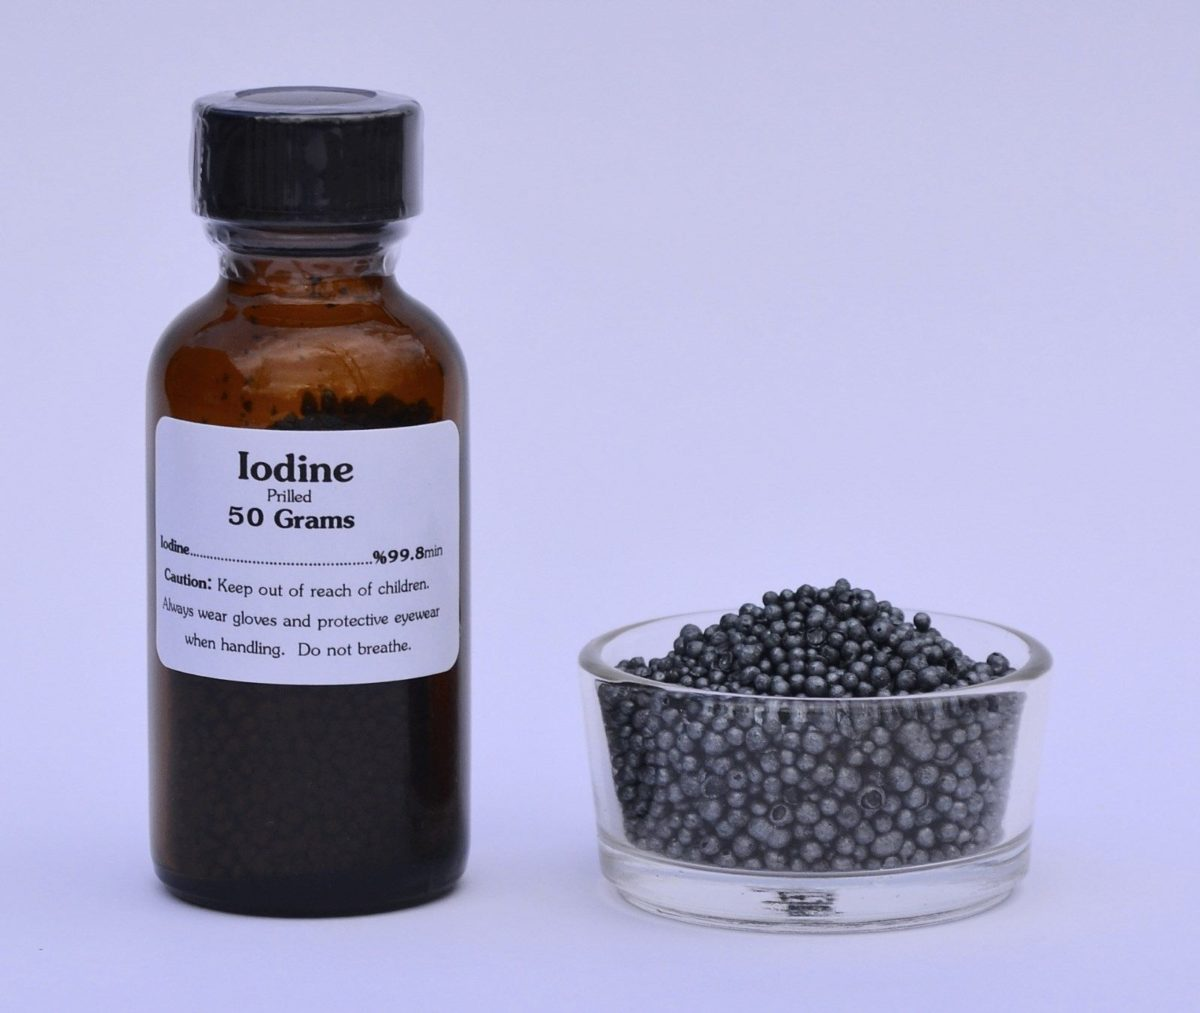 Iodine Crystal For Sale